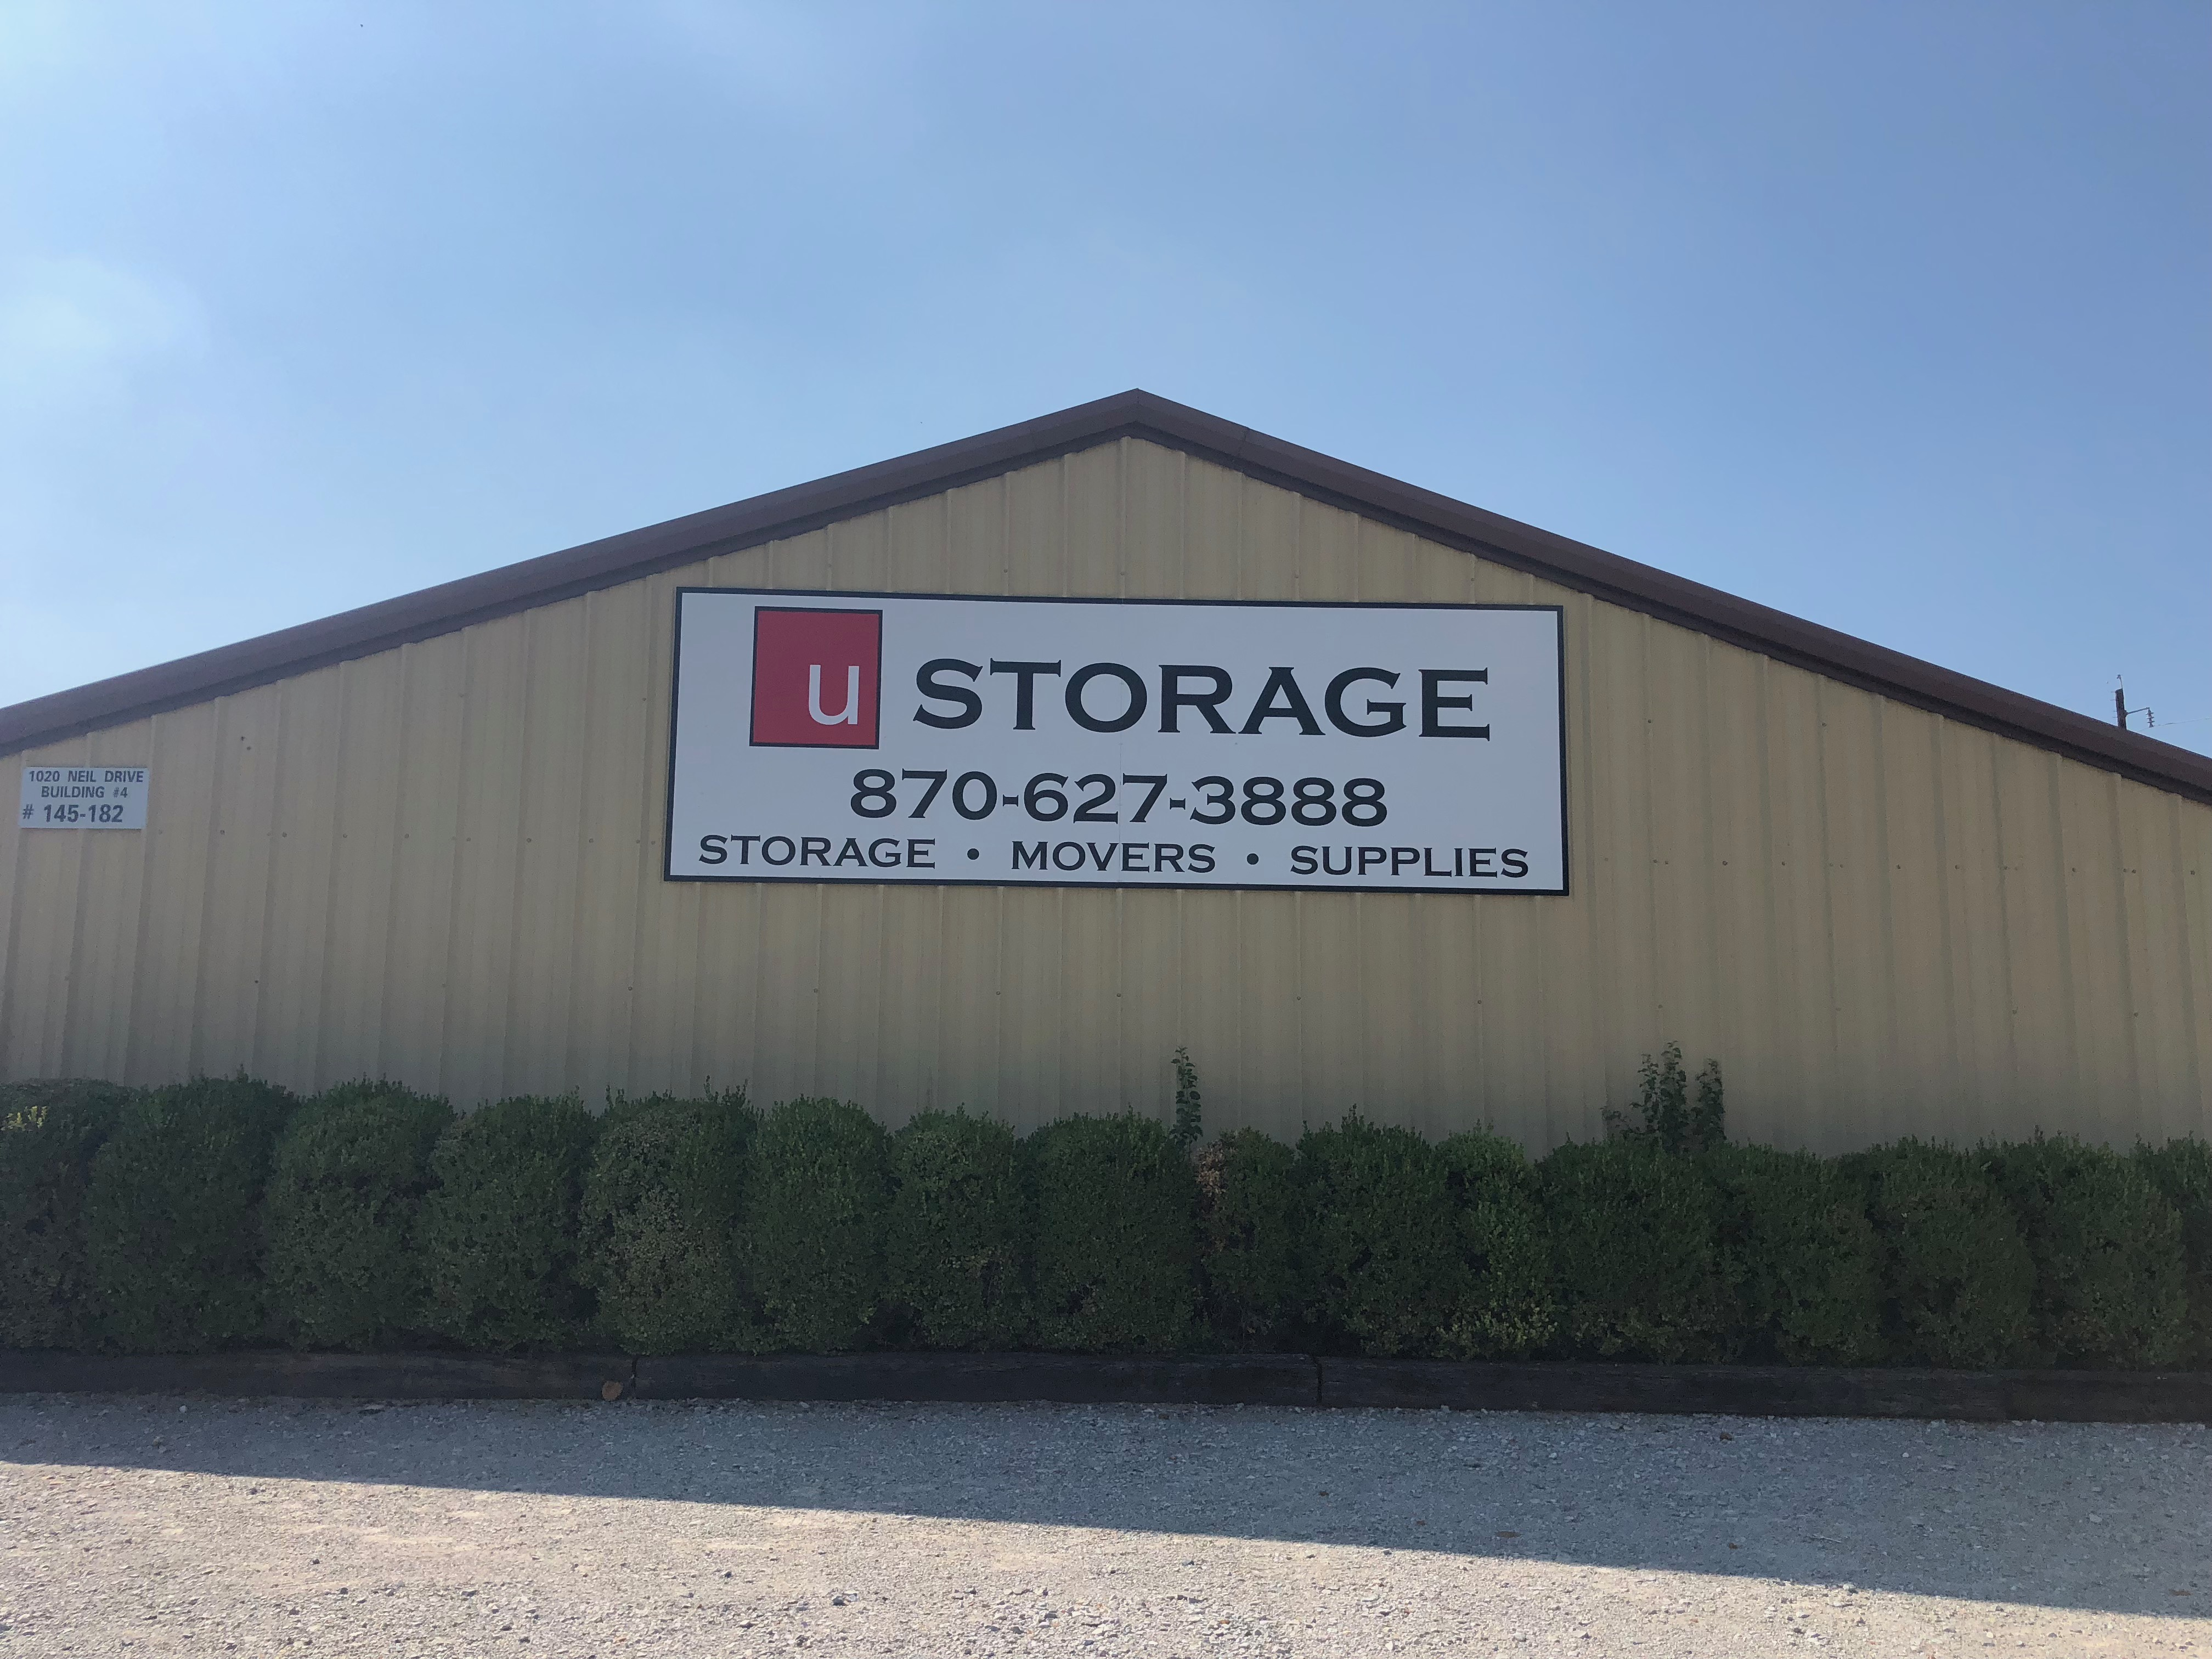 storage units in arkansas conway u storage and rv. Black Bedroom Furniture Sets. Home Design Ideas